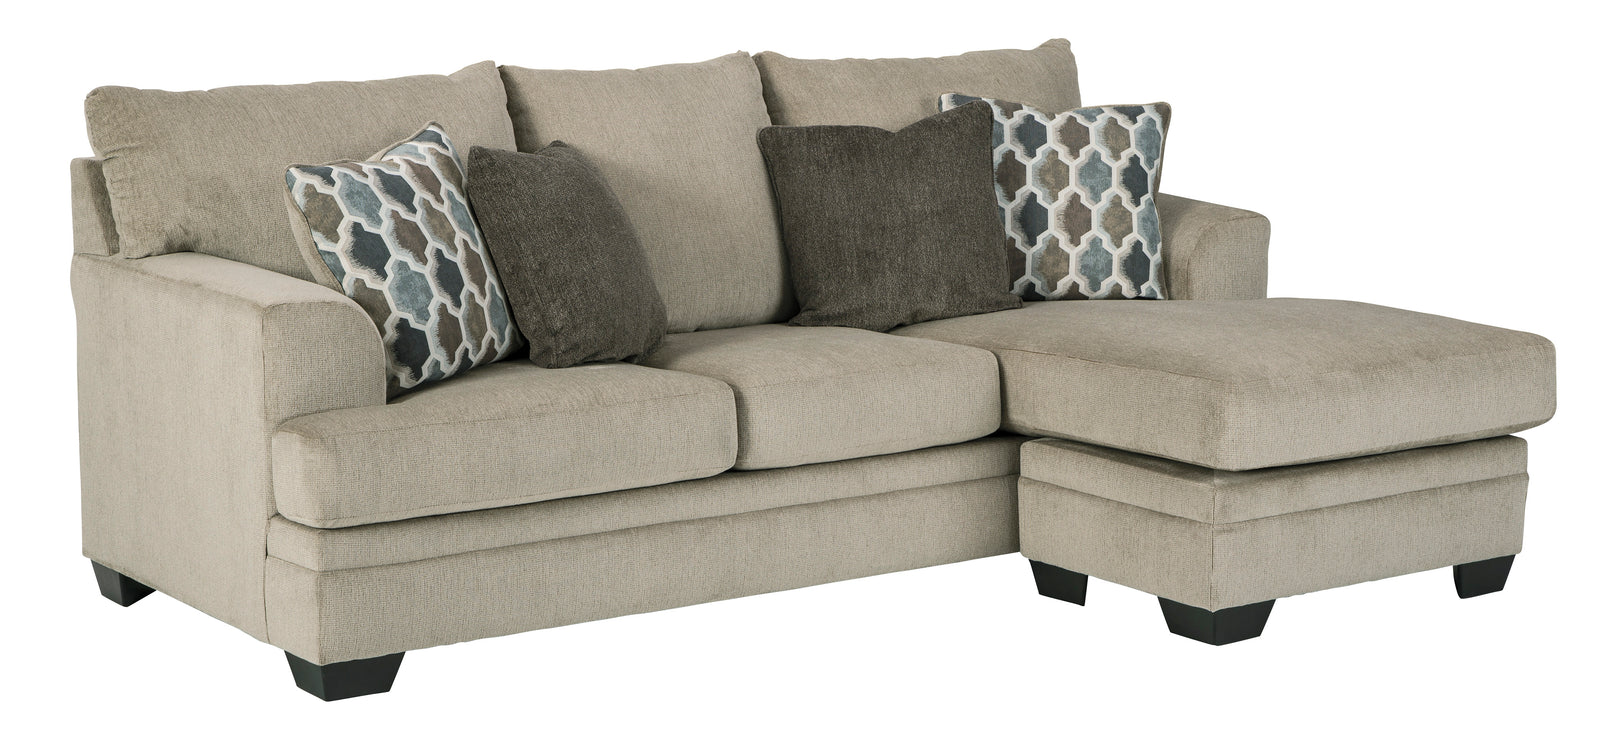 Owen Sofa Chaise (Light Fabric)